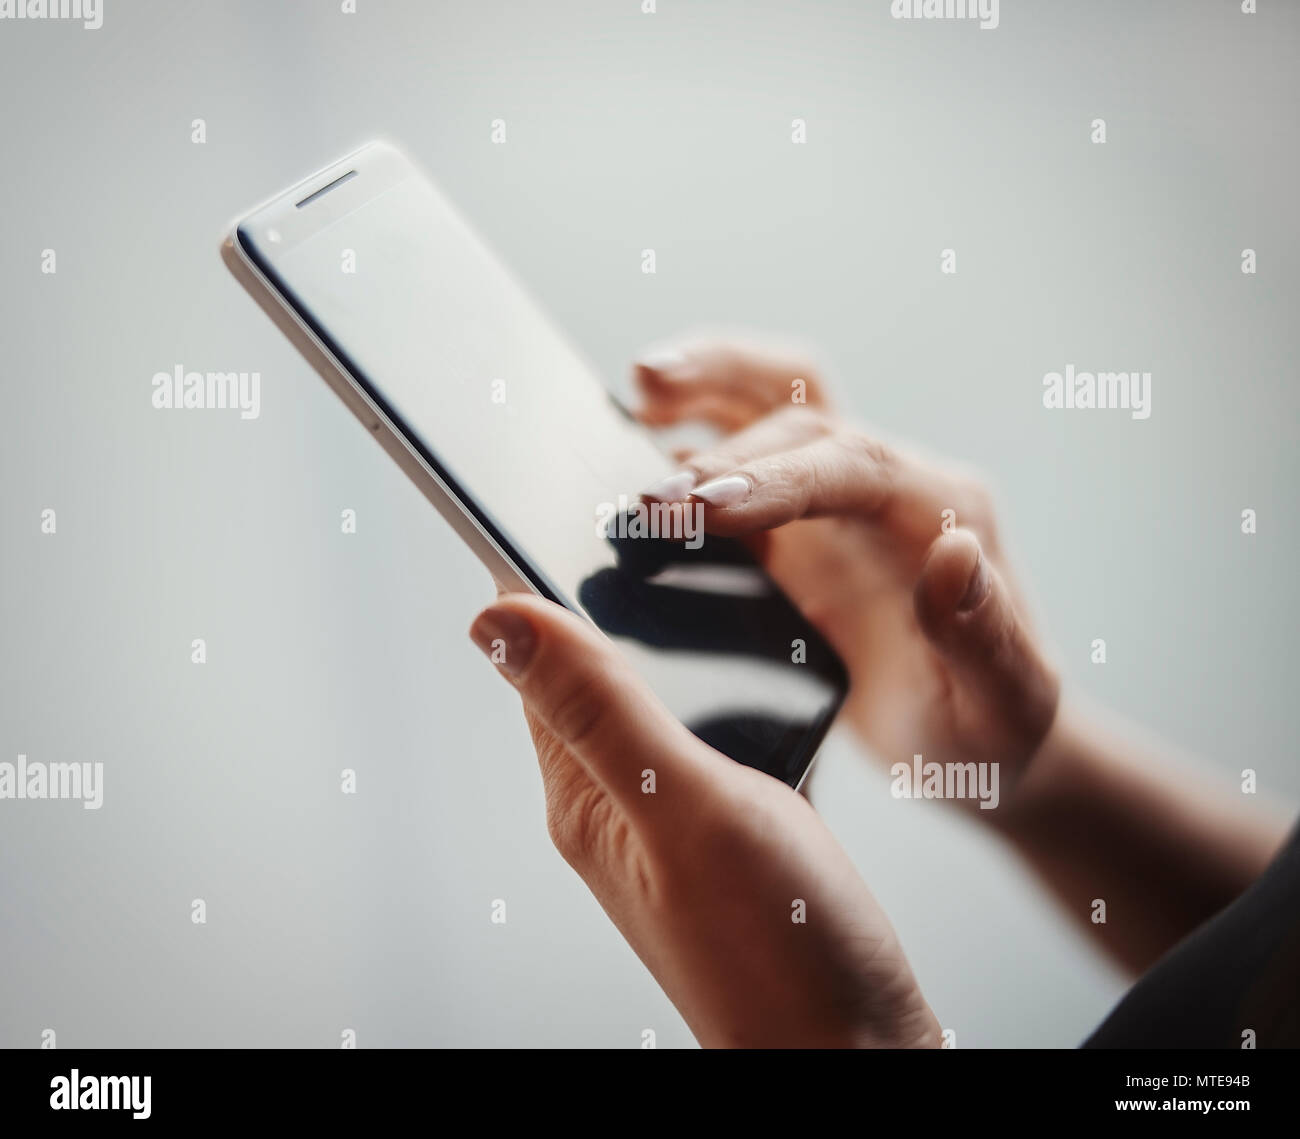 Young girl holding mobile phone and unlocking it - Stock Image